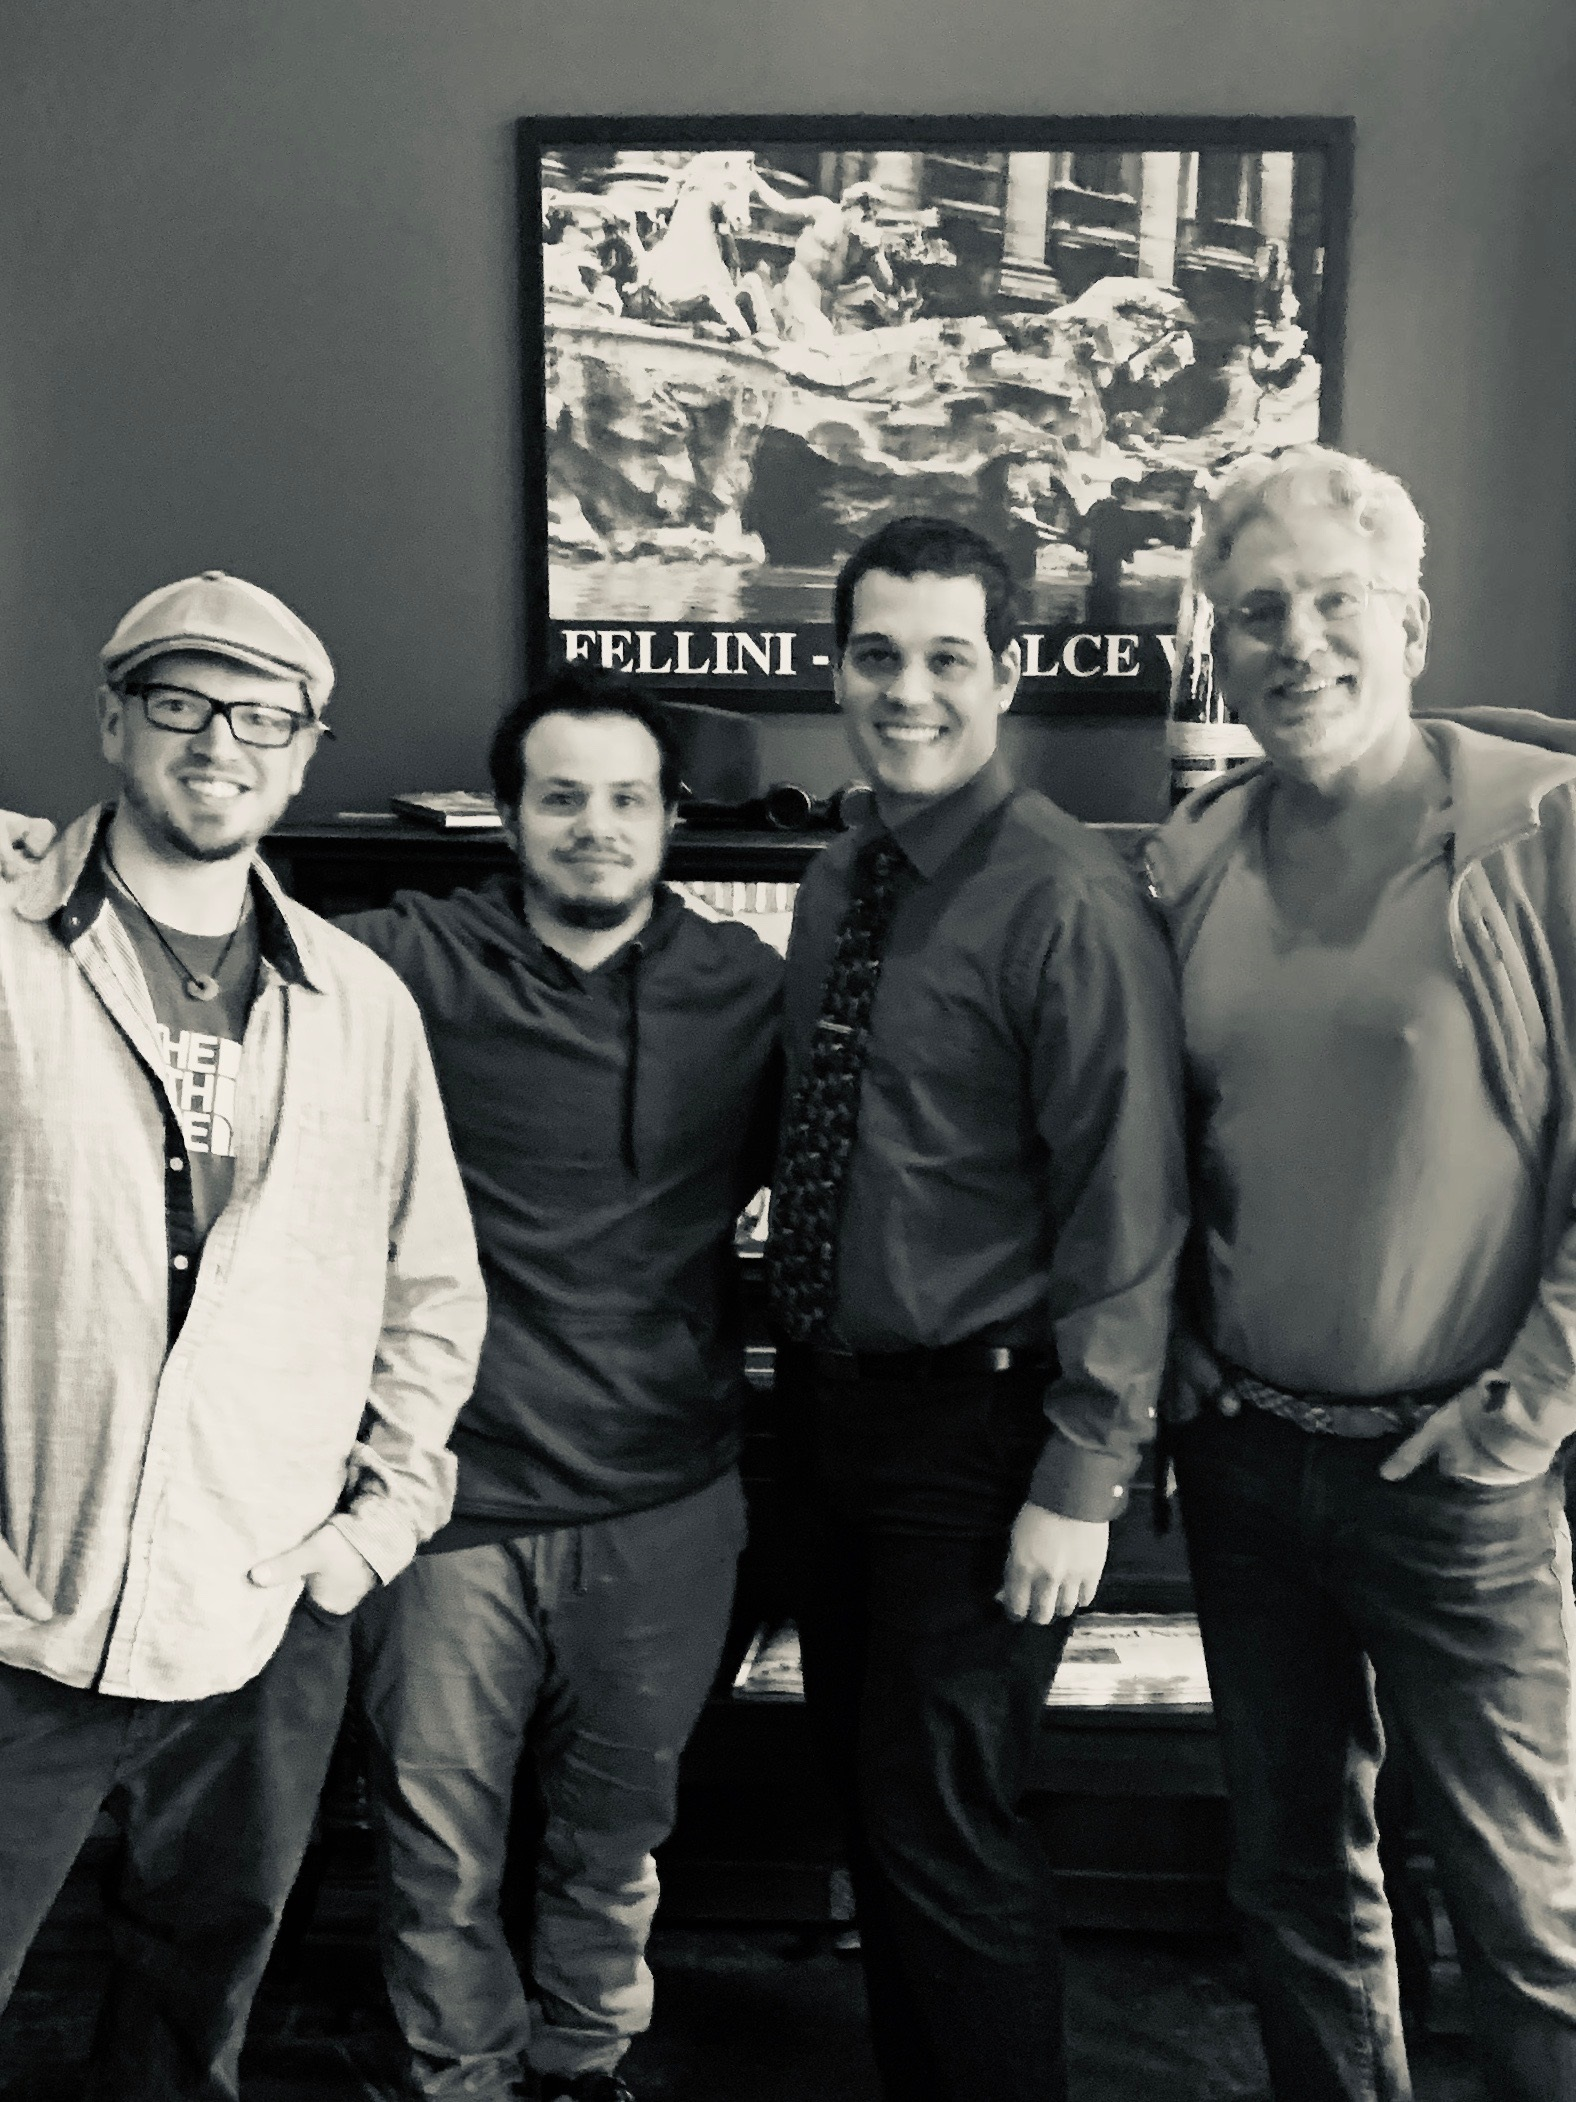 Changes at 3 Sisters… - Chef Tyler and I are pleased to announce that we have sold 3 Sisters to Cory Lope and Luca Caretti. This is a great opportunity for them to join the Habersham community!  We look forward to sharing Luca's food with you and we thank you for your support over the last three years.Cheers!Rick Slade